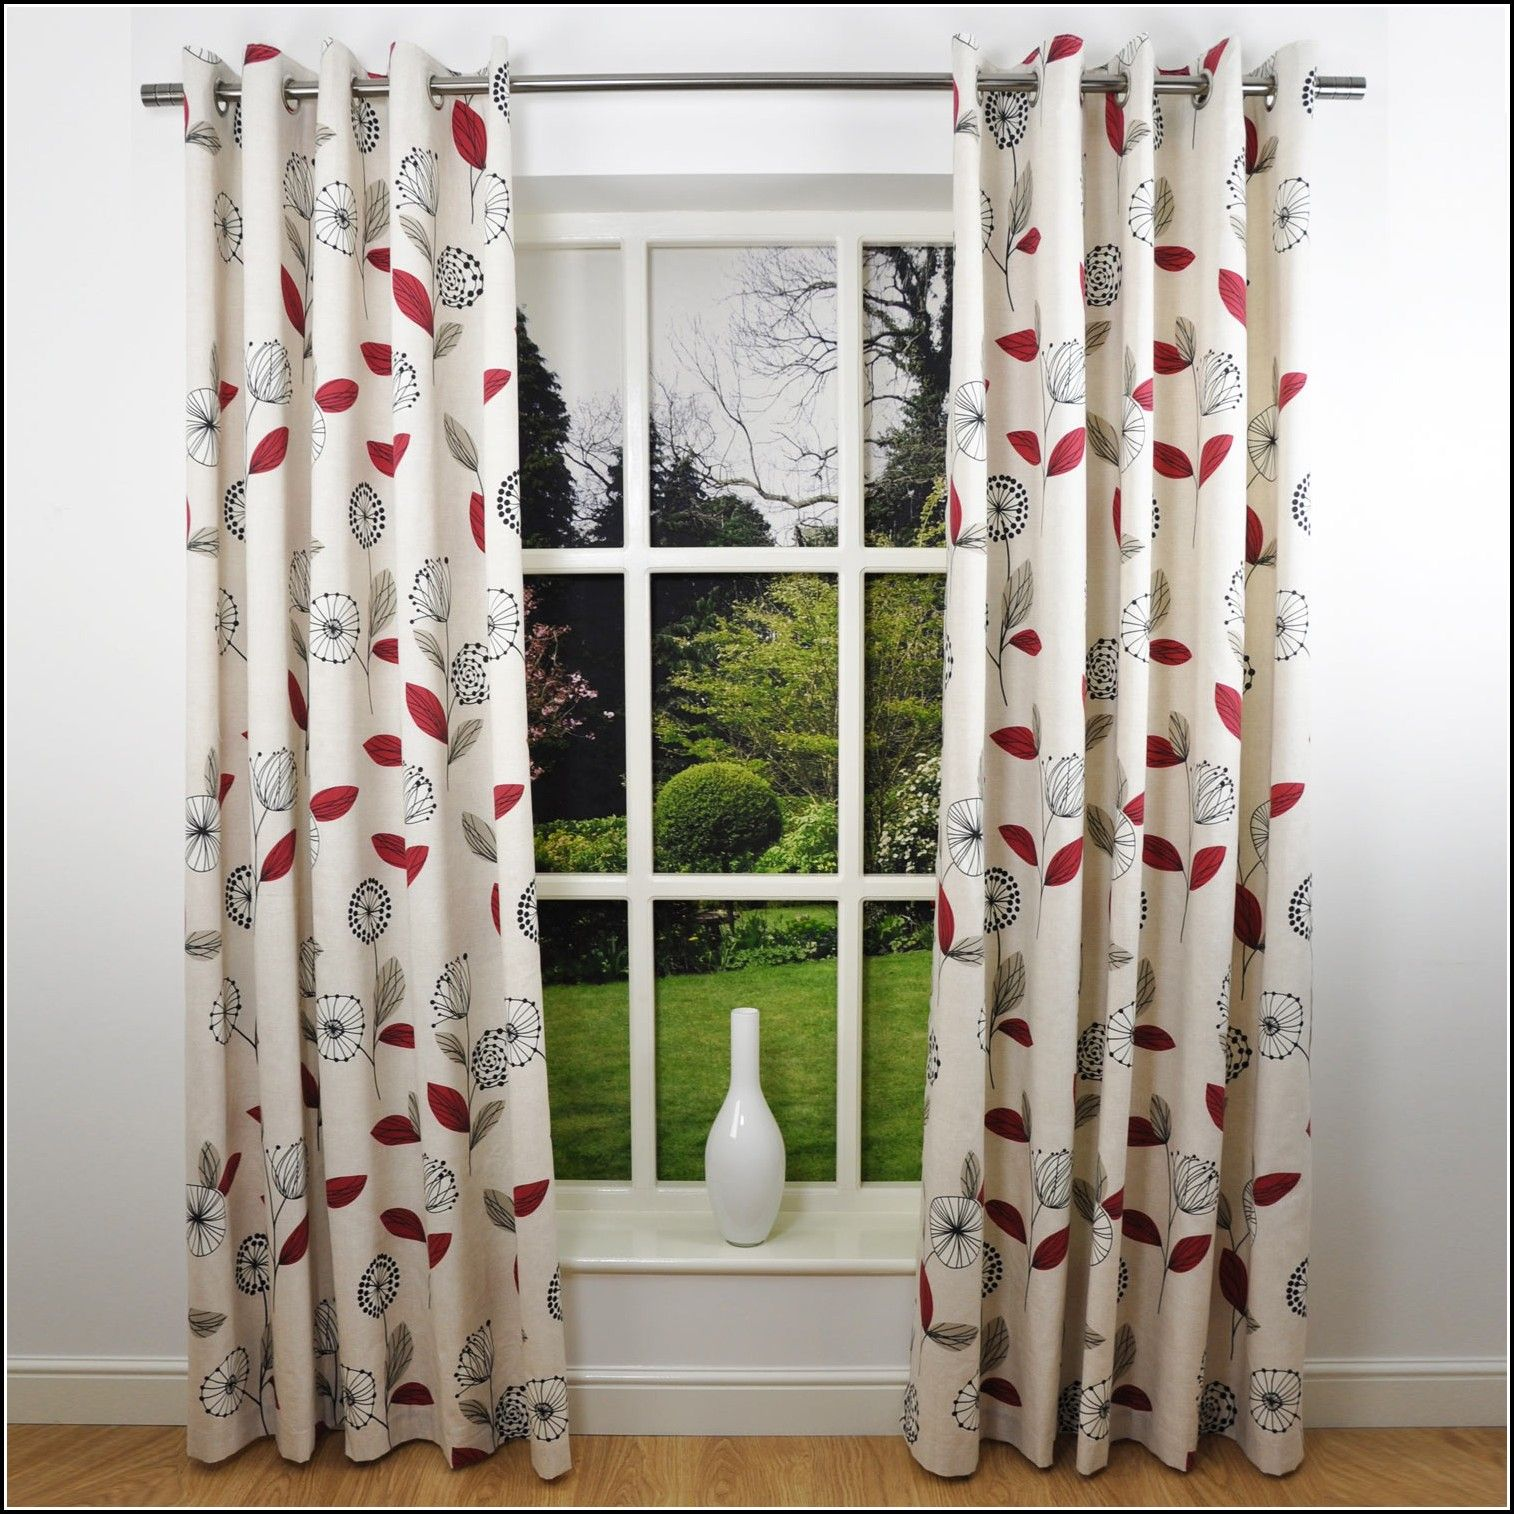 20 Hottest Curtain Designs For 2019 Curtain Designs Red